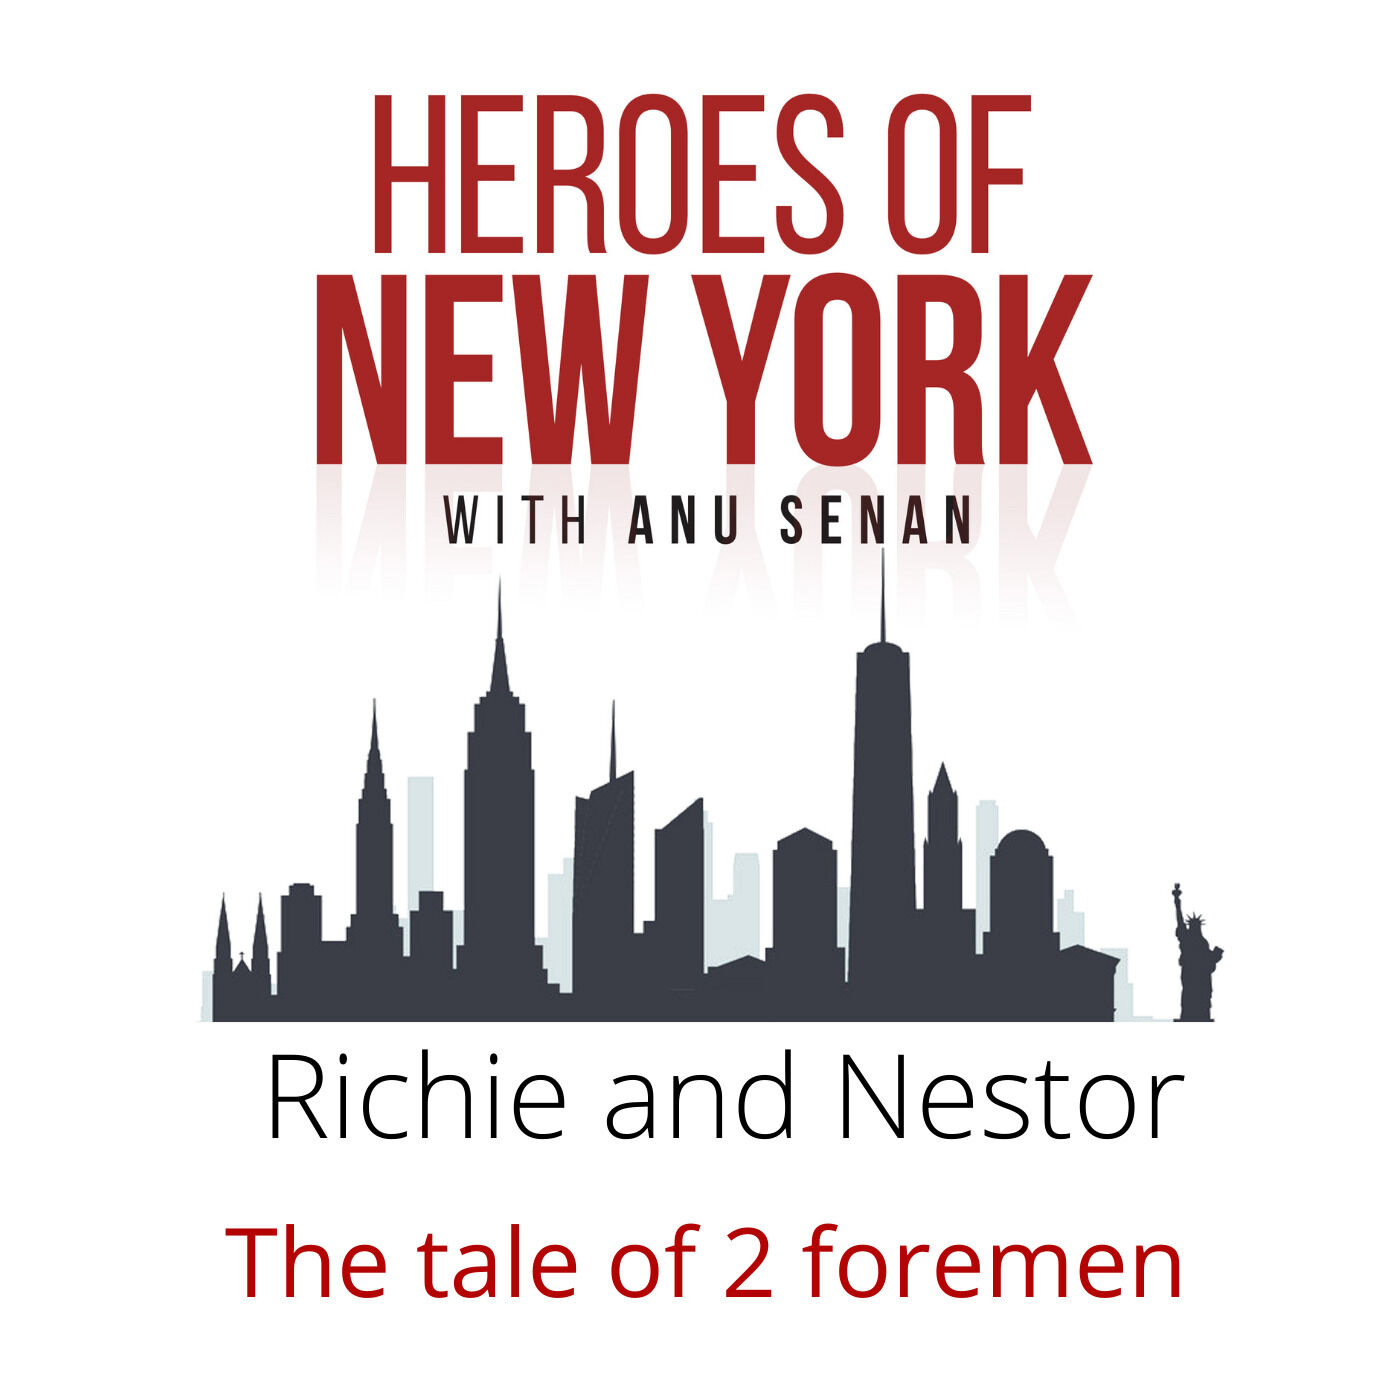 Episode#2 - Richie and Nestor - Part 1 - The tale of two foremen and their team